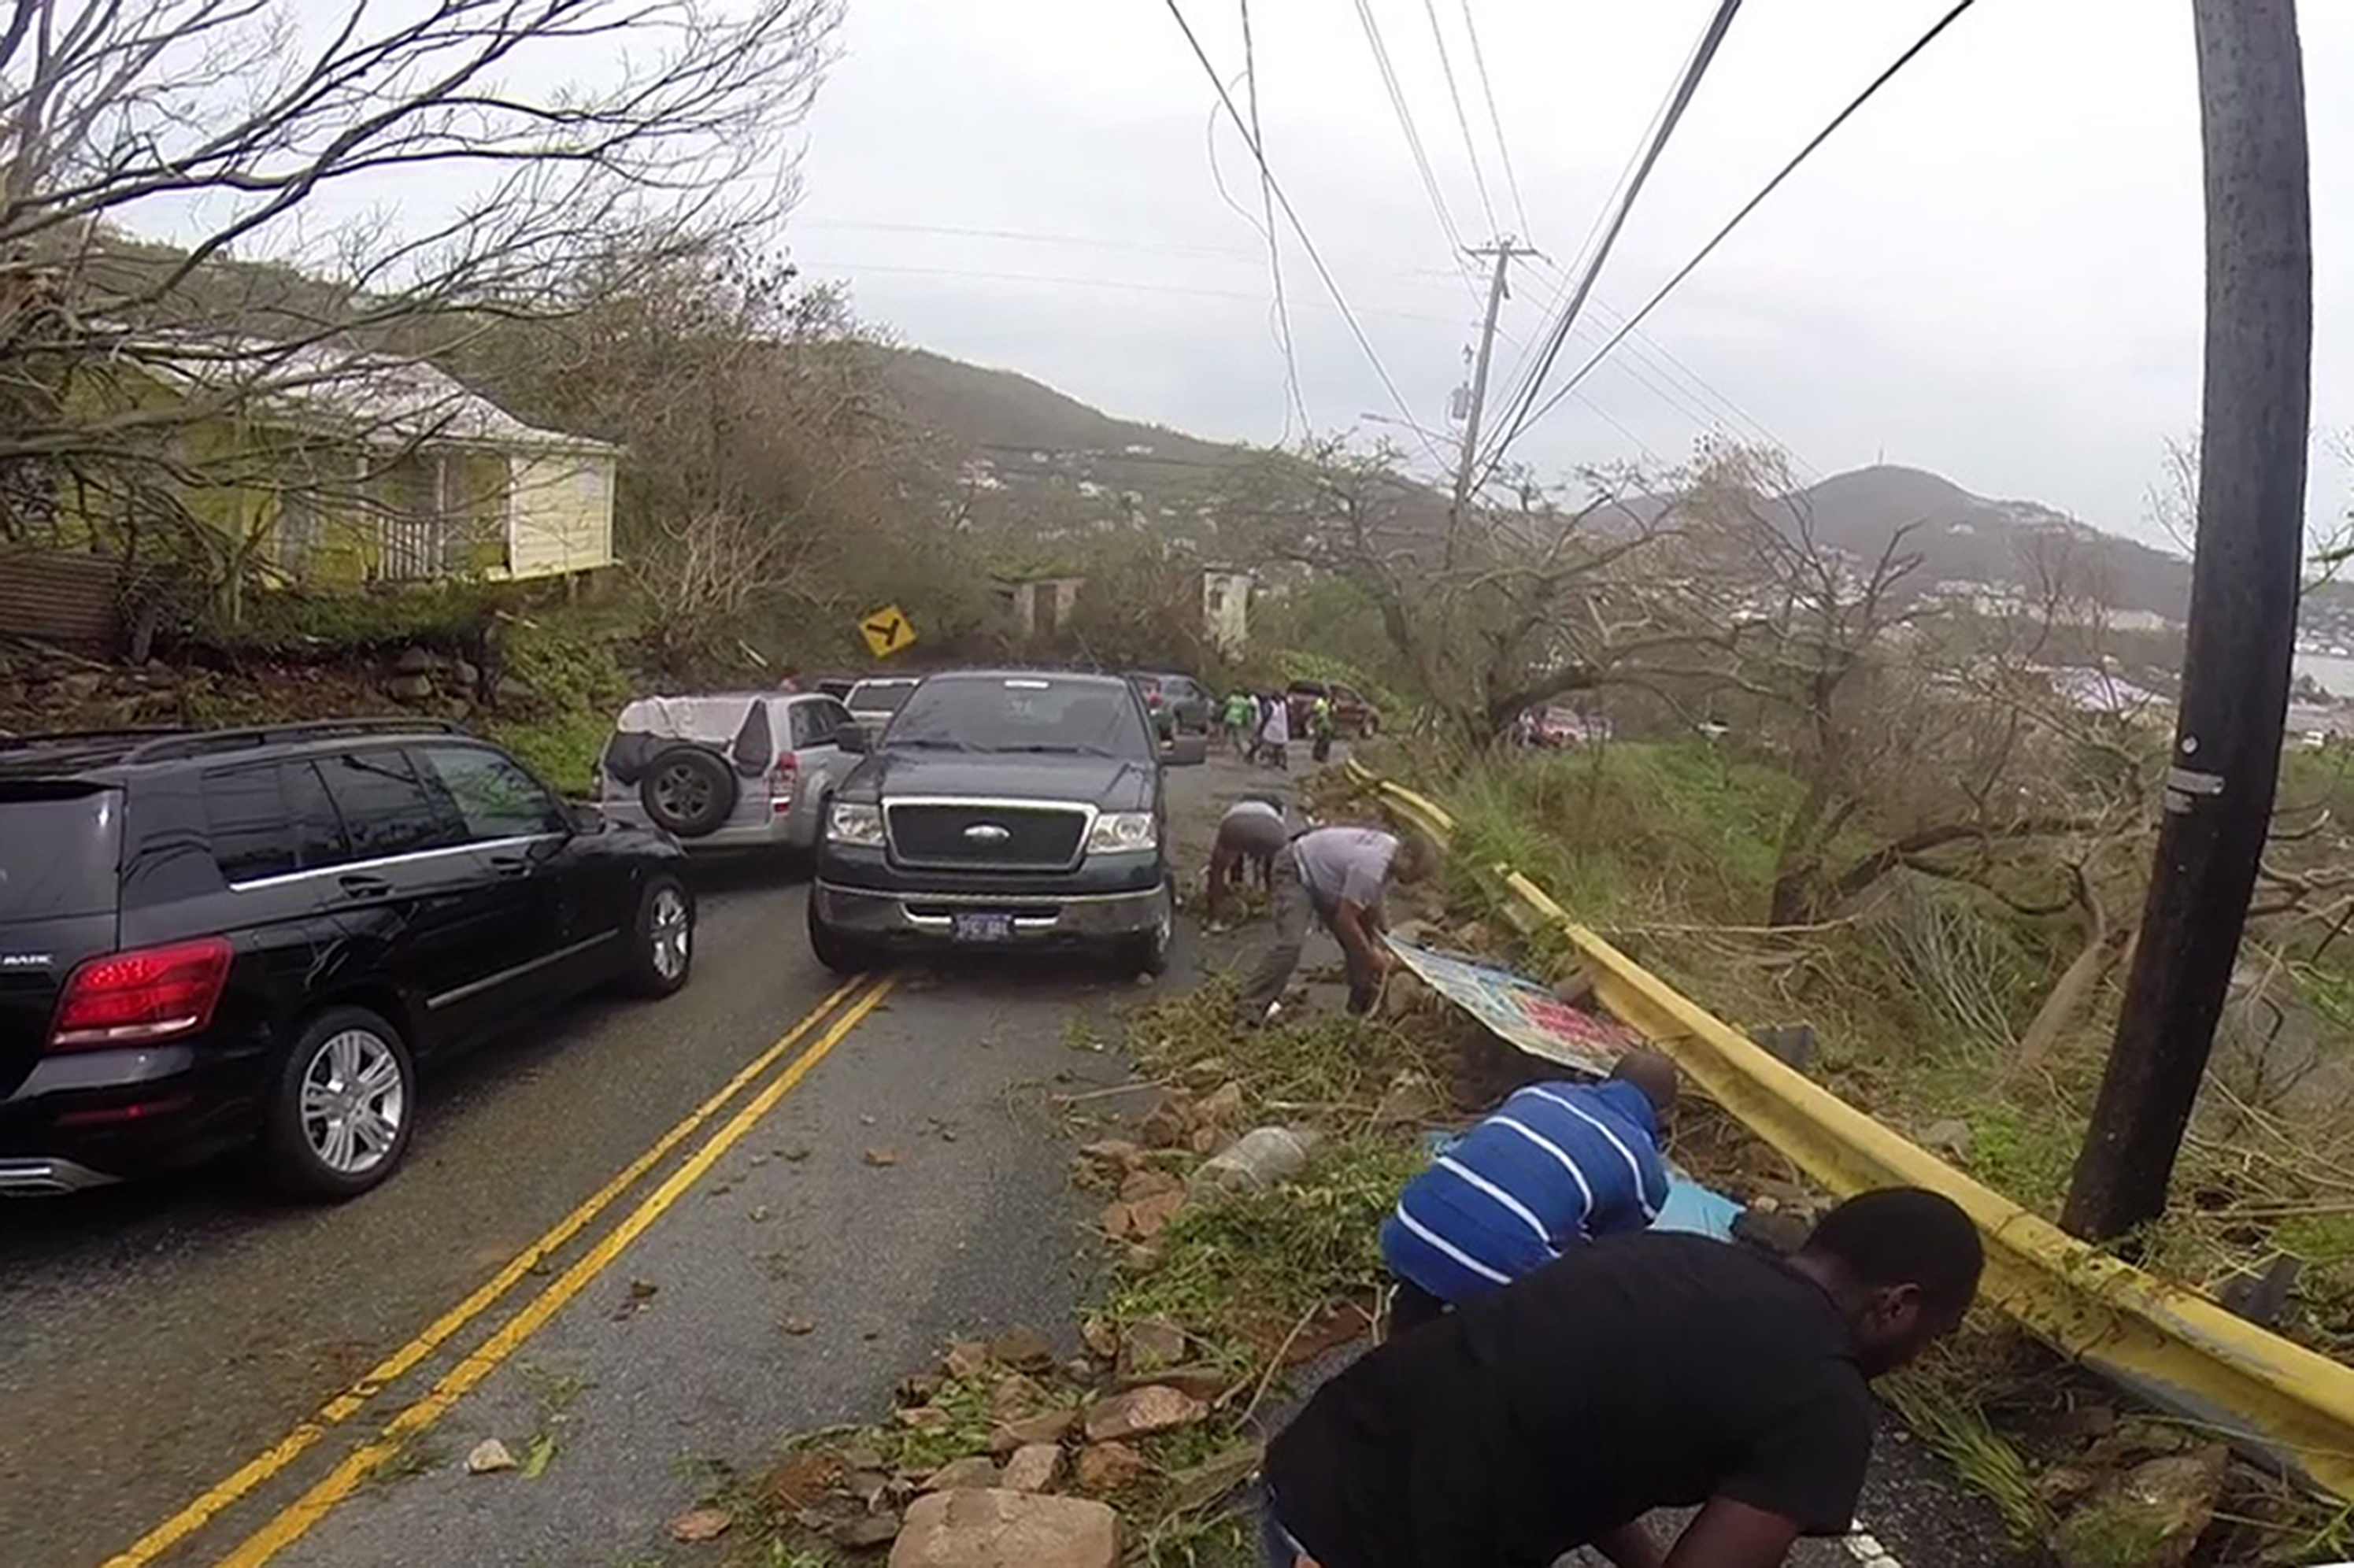 <div class='meta'><div class='origin-logo' data-origin='none'></div><span class='caption-text' data-credit='Ian Brown/AP Photo'>In this image made from video, motorists remove debris caused by Hurricane Irma from the road in St. Thomas, U.S. Virgin Islands, Thursday, Sept. 7, 2017.</span></div>